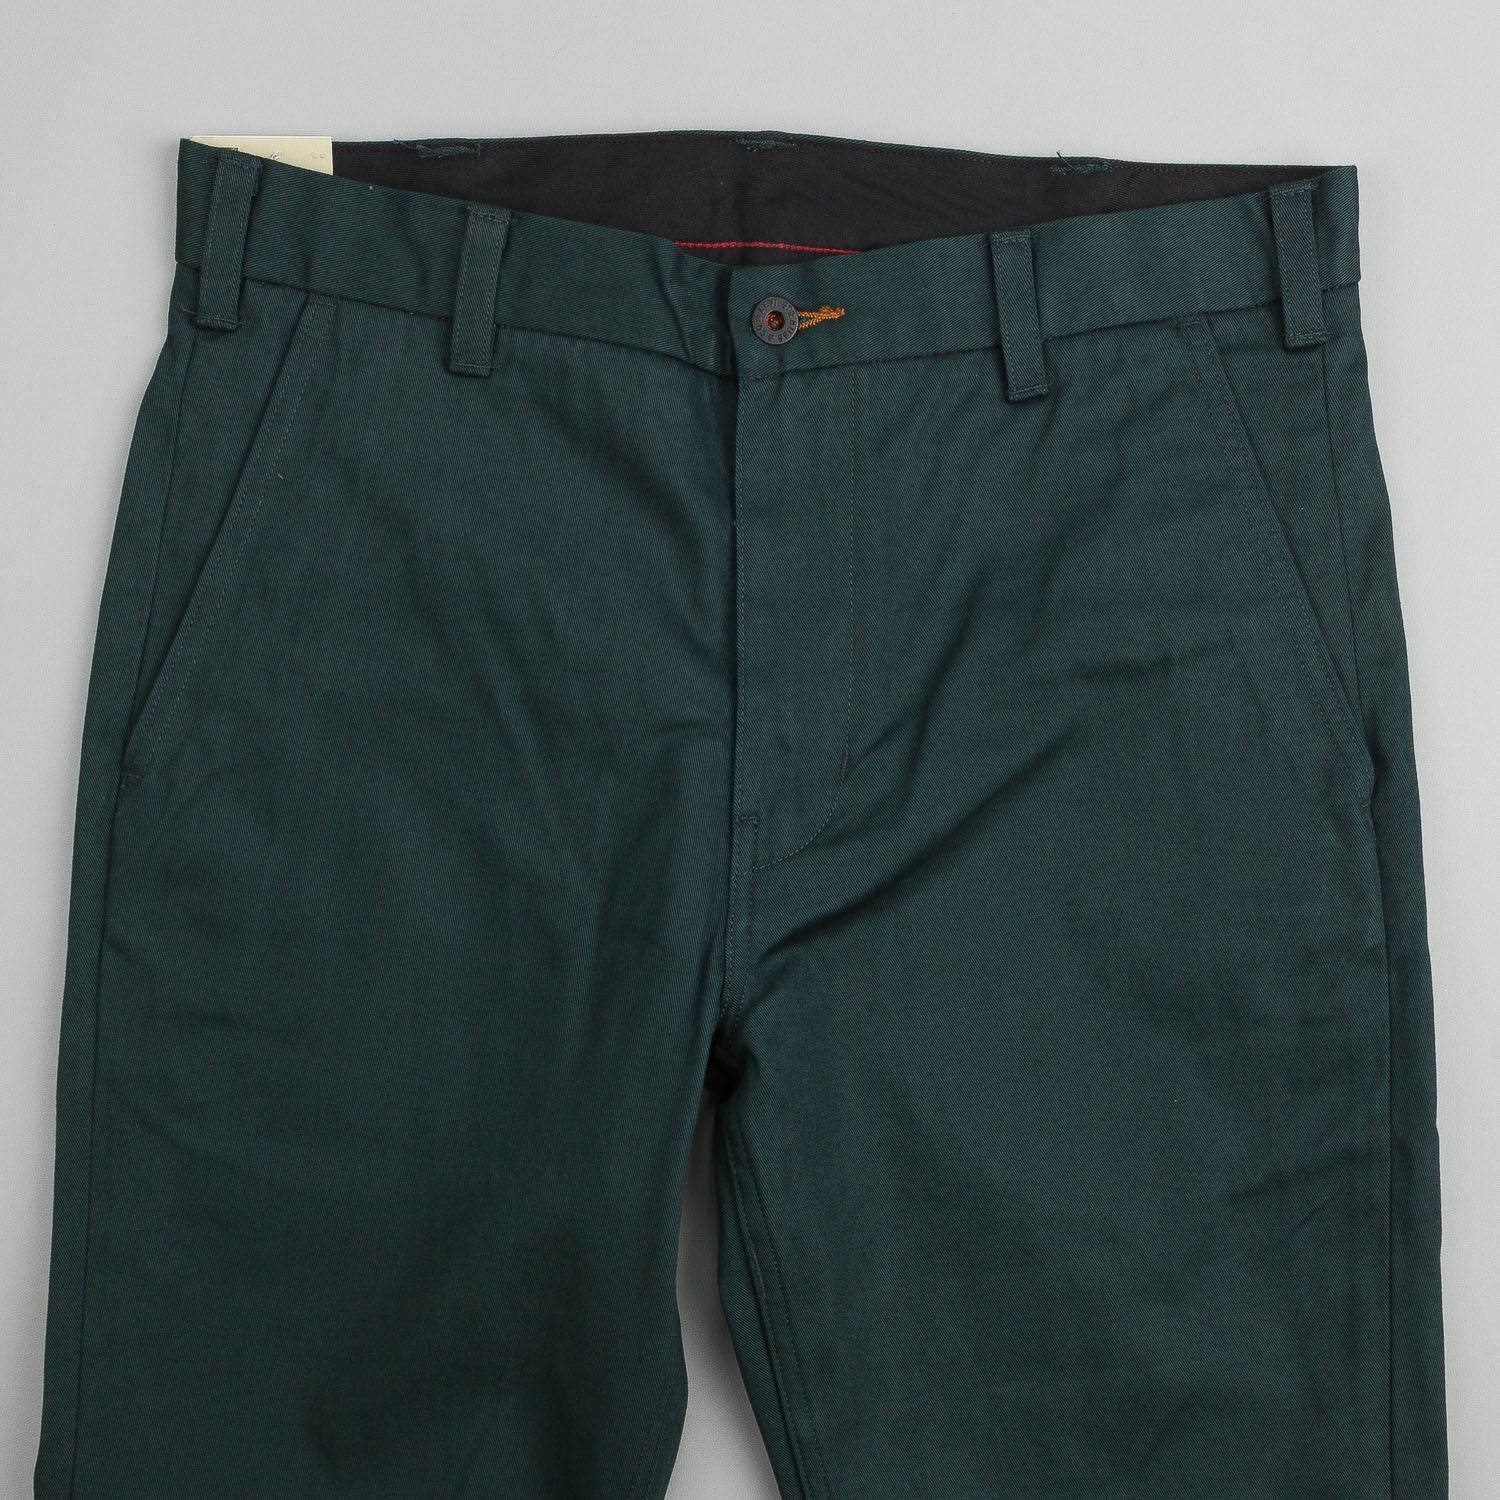 Levi's® Skate Work Trousers SE - Canopy